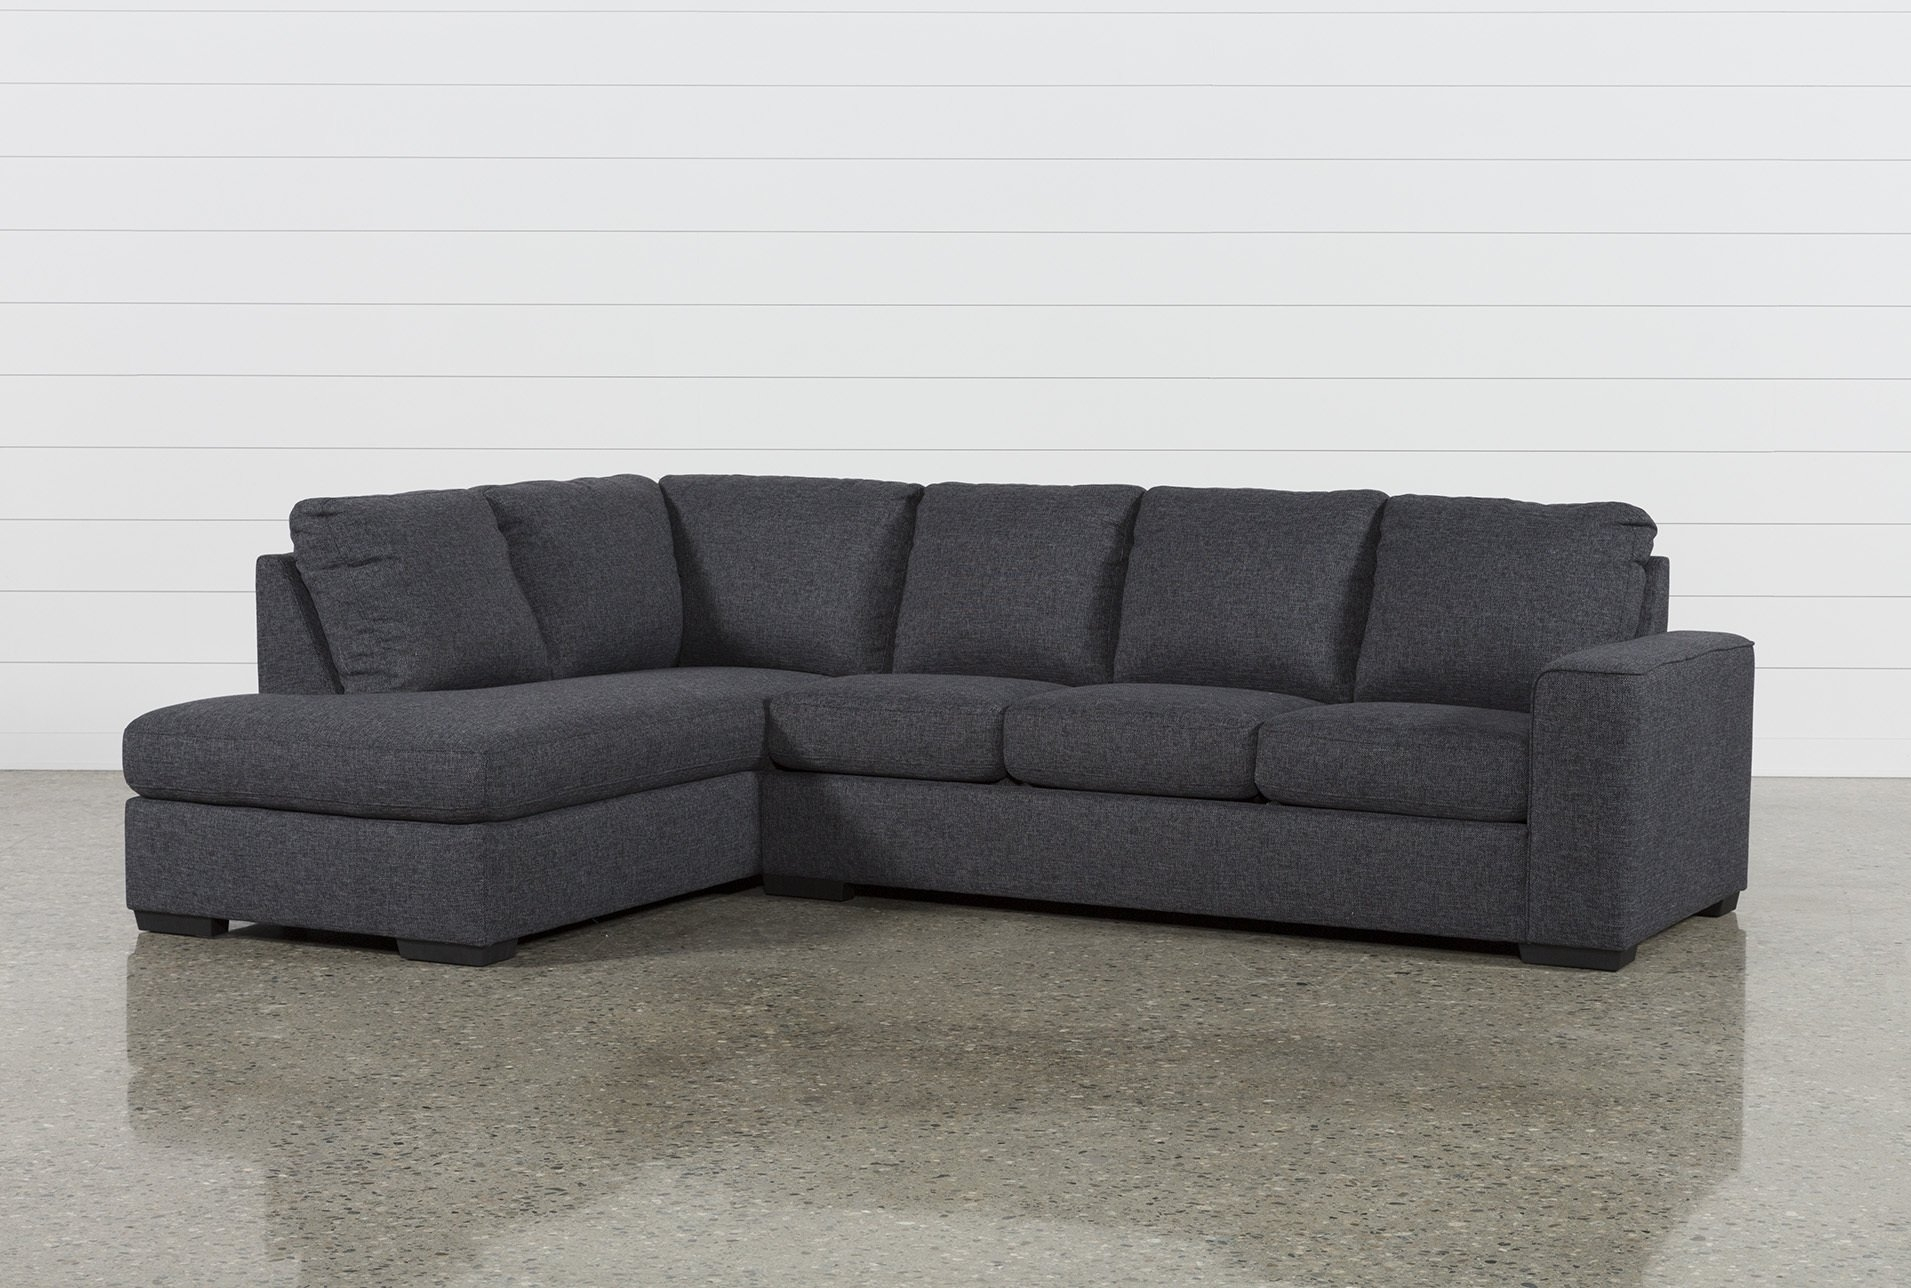 Lucy Dark Grey 2 Piece Sectional W/laf Chaise | Dark Grey And Products for Arrowmask 2 Piece Sectionals With Laf Chaise (Image 13 of 30)